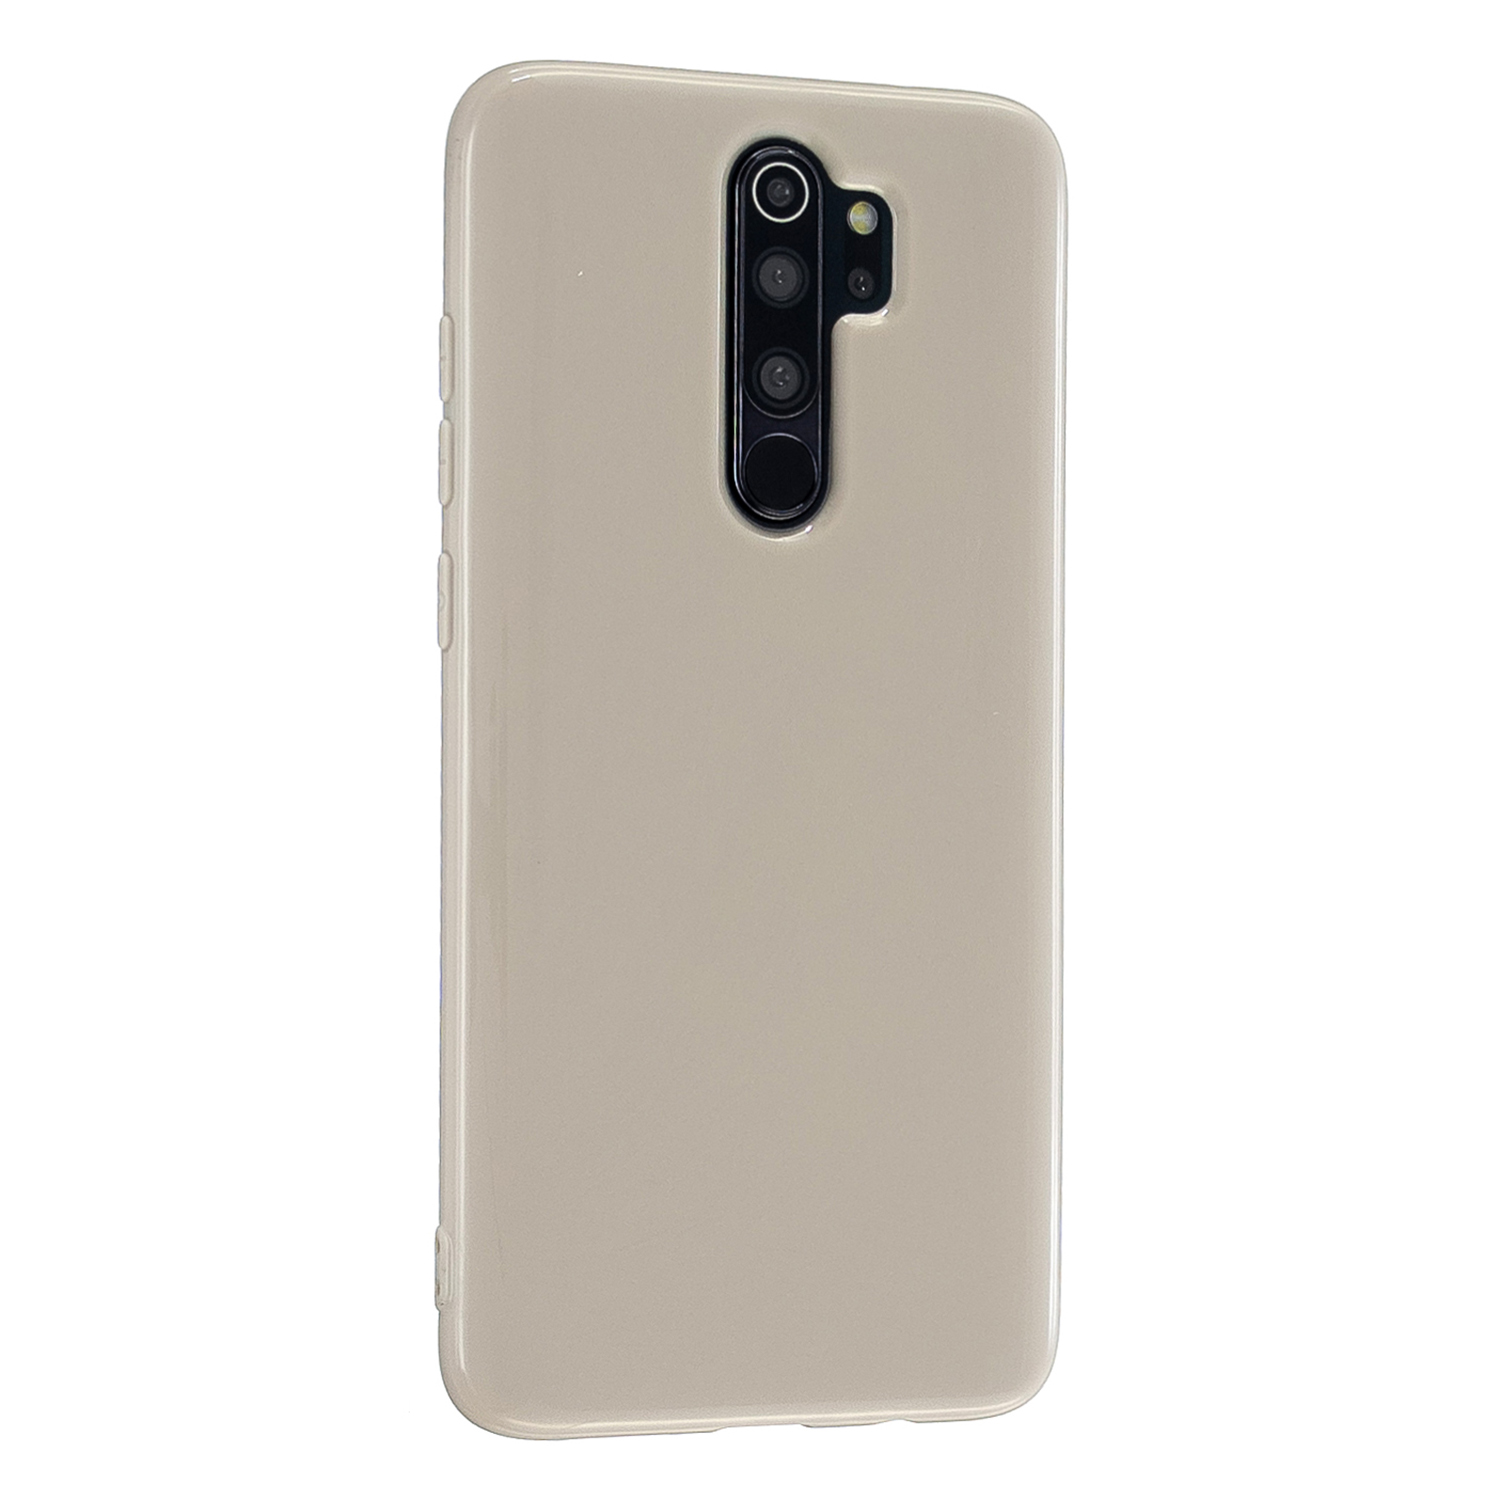 for VIVO Reno Ace/X2 PRO/ A9 2020/A5 2020 Thicken 2.0mm TPU Back Cover Cellphone Case Shell Khaki